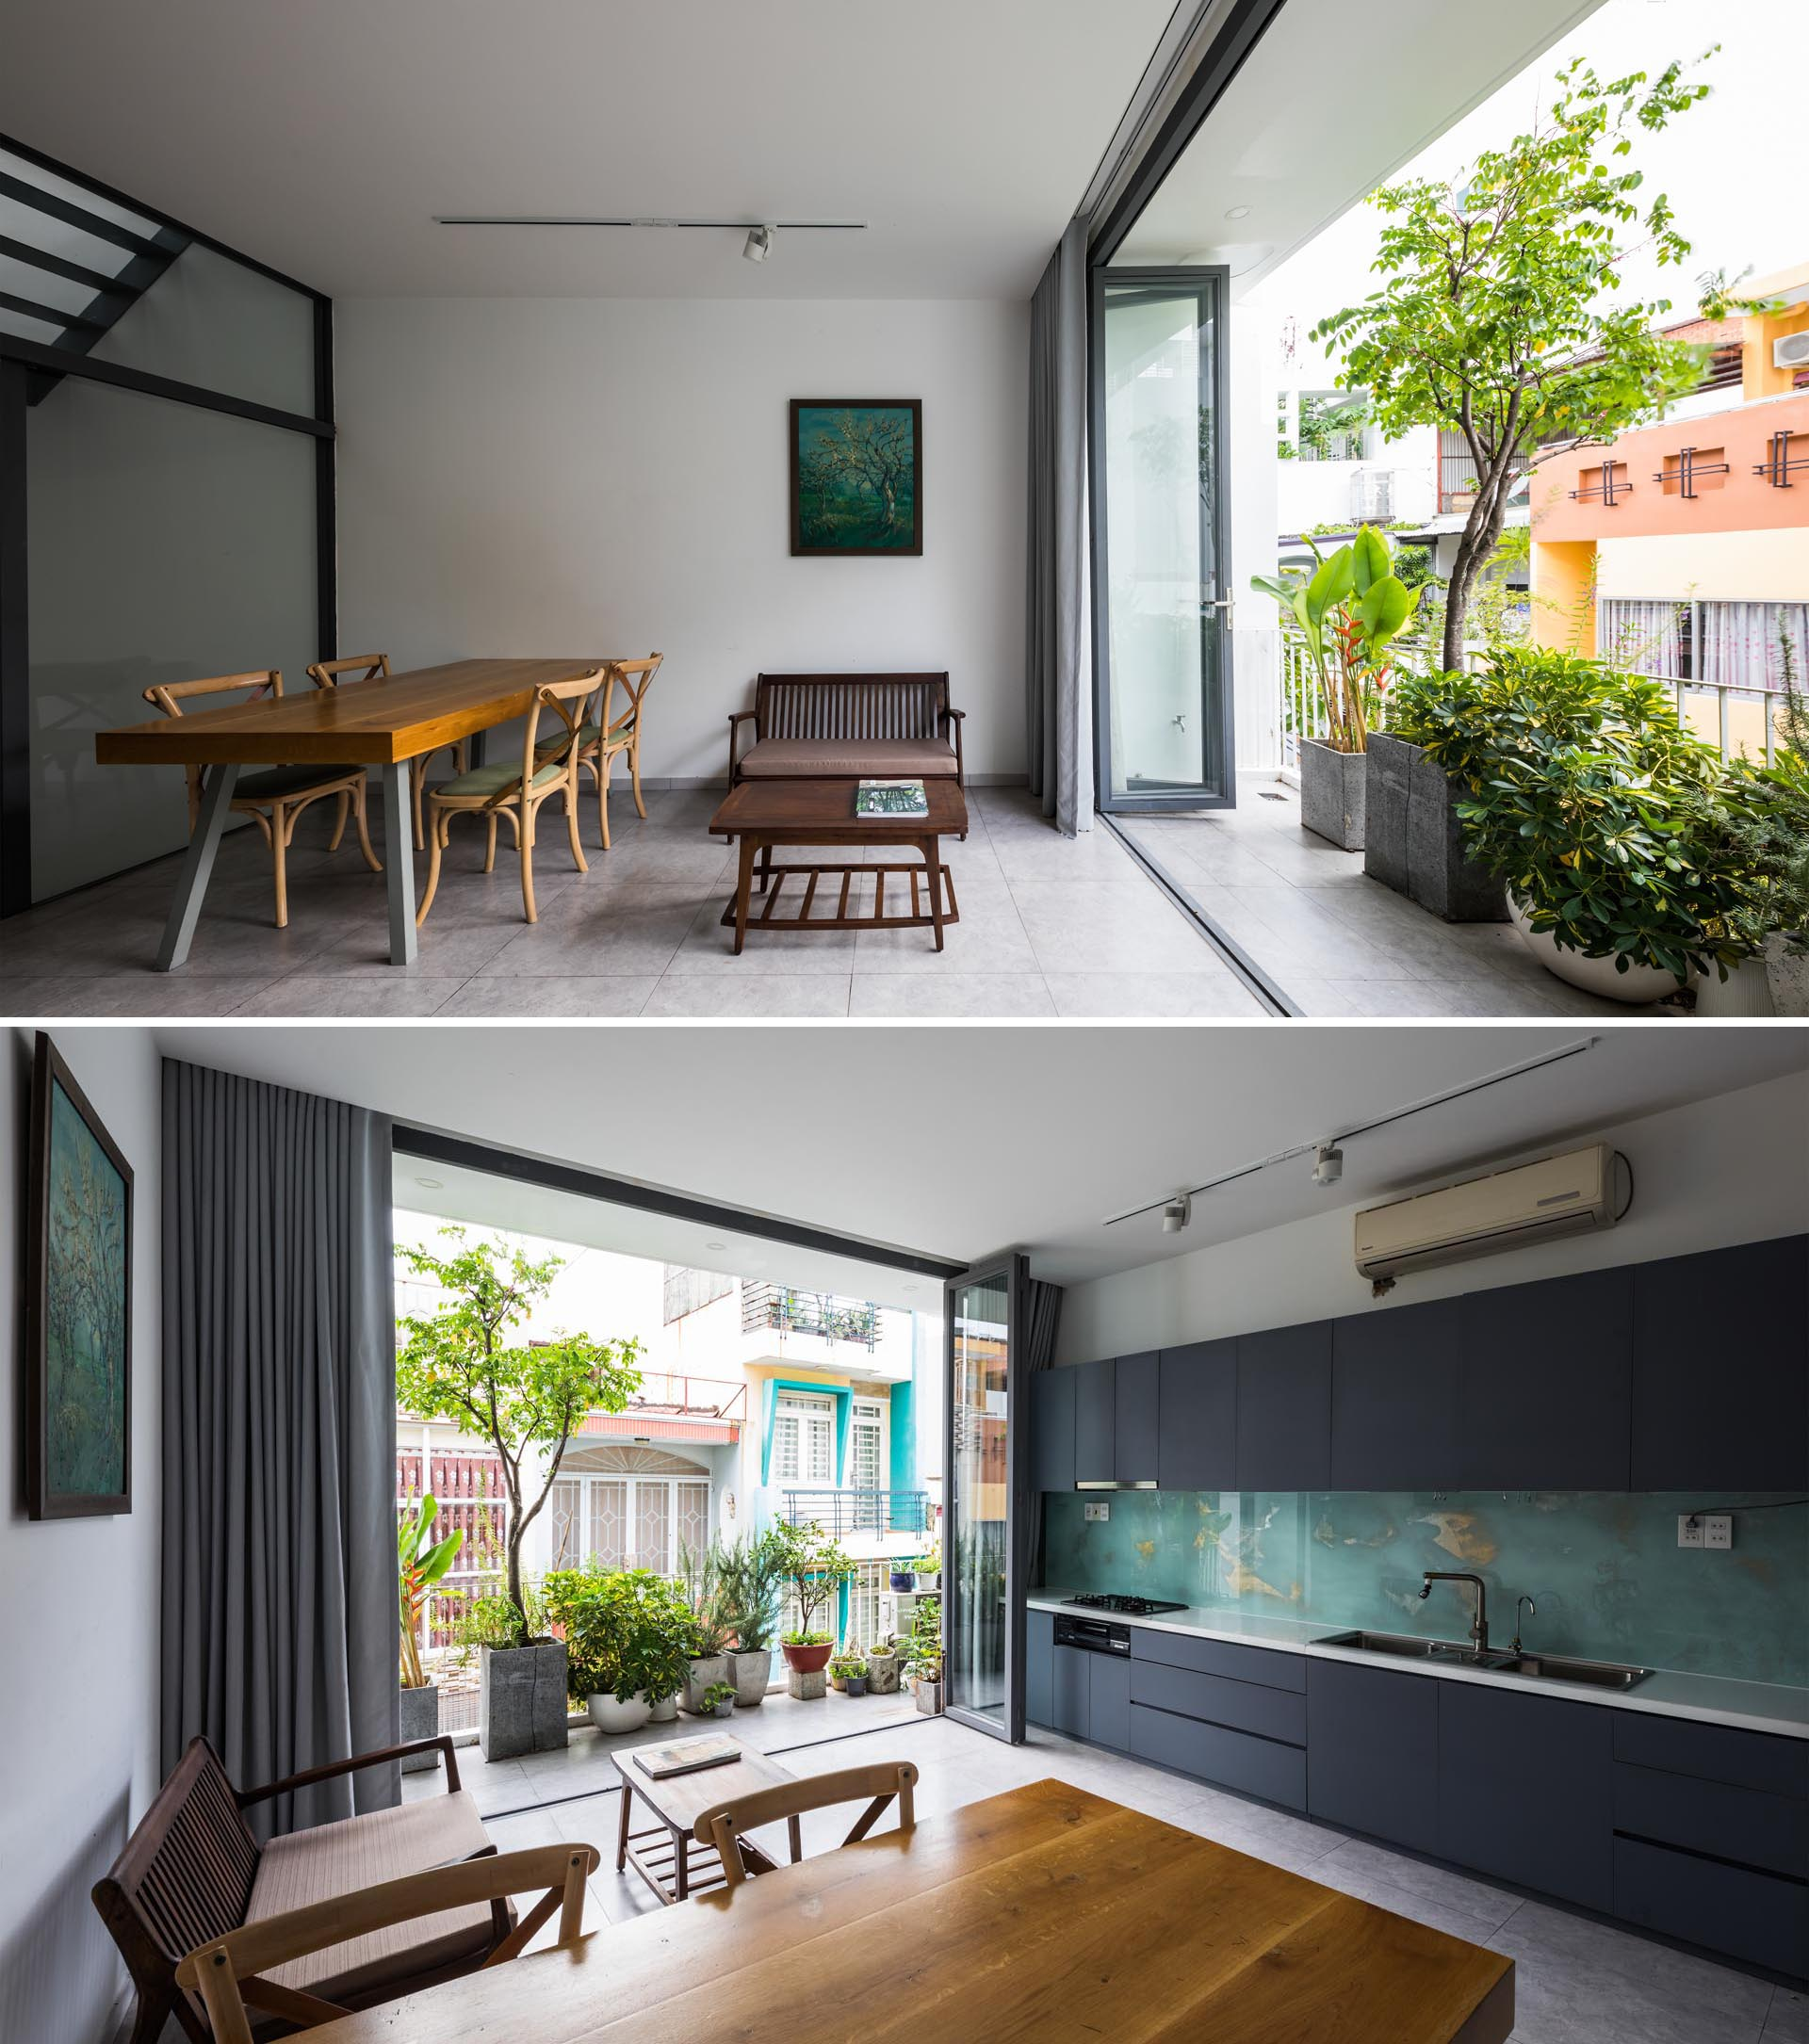 The second floor of this home includes the dining room, living room, and kitchen, all of which enjoy a balcony, where even more plants can be found.